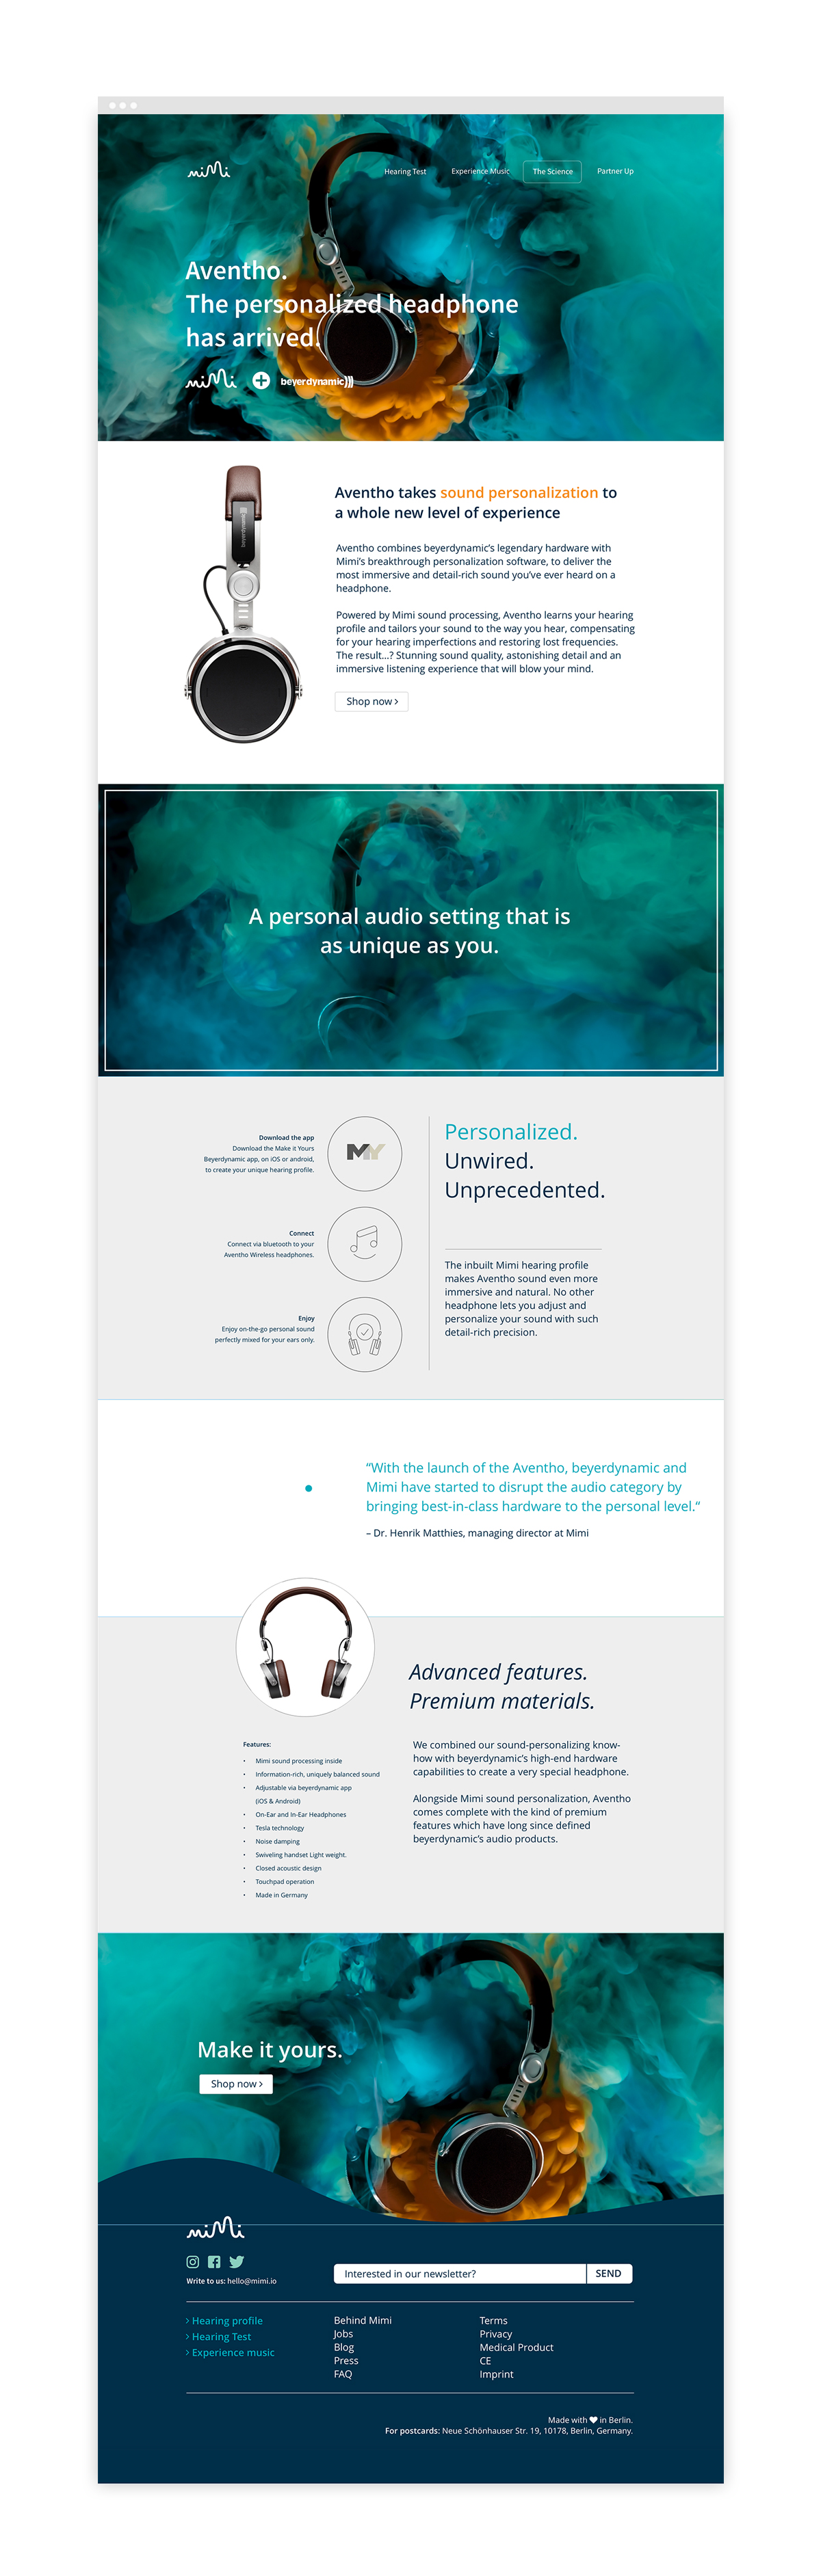 Alongside of working with the website and SoMe I attended weekly meetings to contribute in the development of the MIY-app-integration of the Mimi Hearing technology for the  Aventho  headphones by  Beyerdynamic .